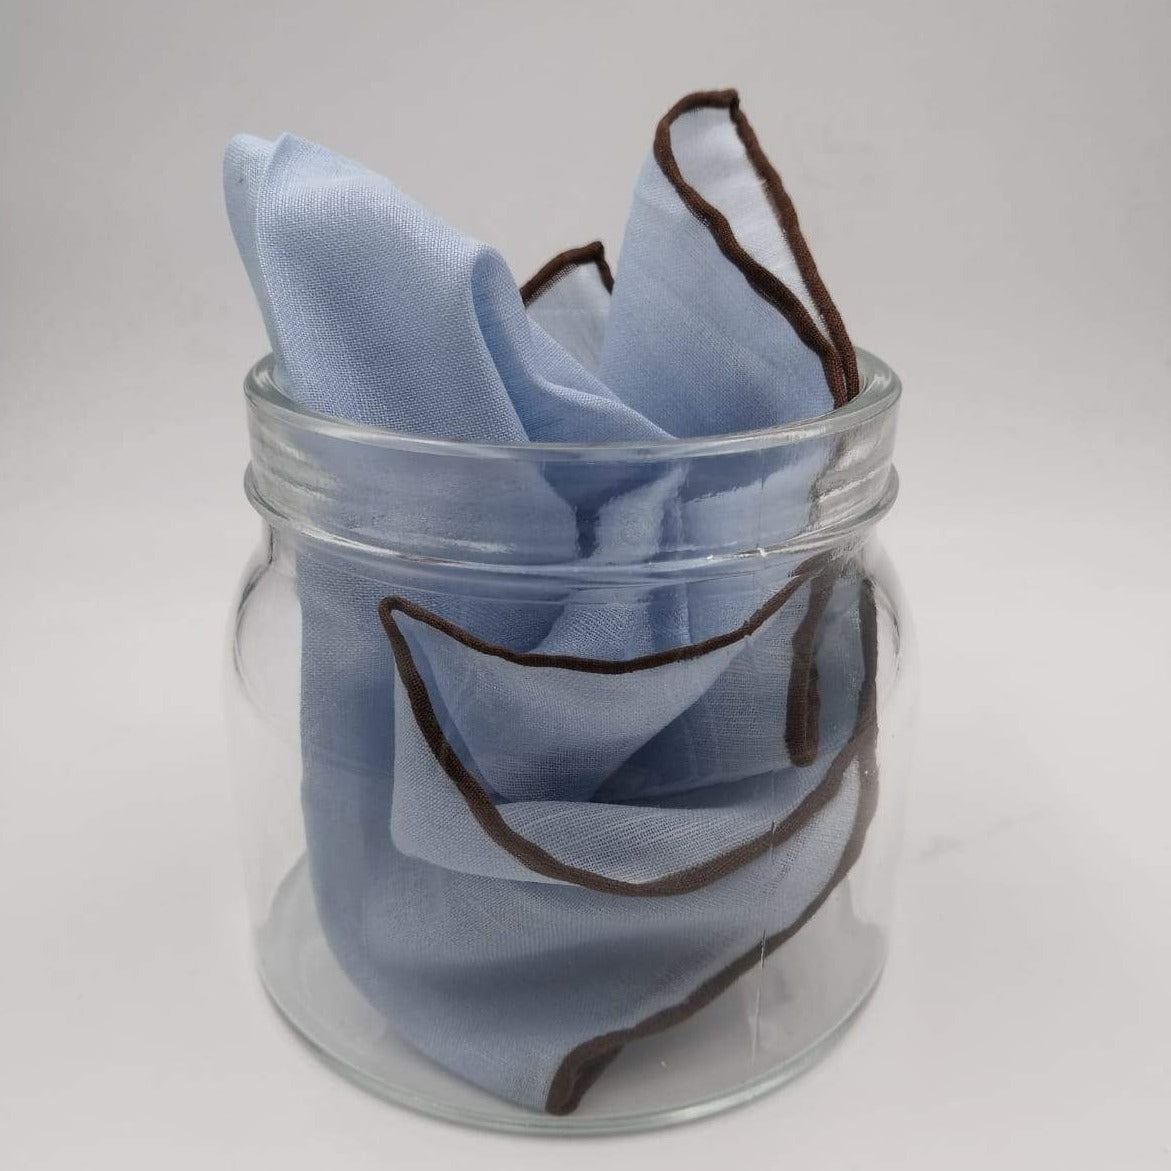 Cruciani & Bella 60%Linen  40% Cotton Hand-rolled  -  Pocket Square Light Blue and Brown Handmade in Italy 39 cm X 39cm #4557